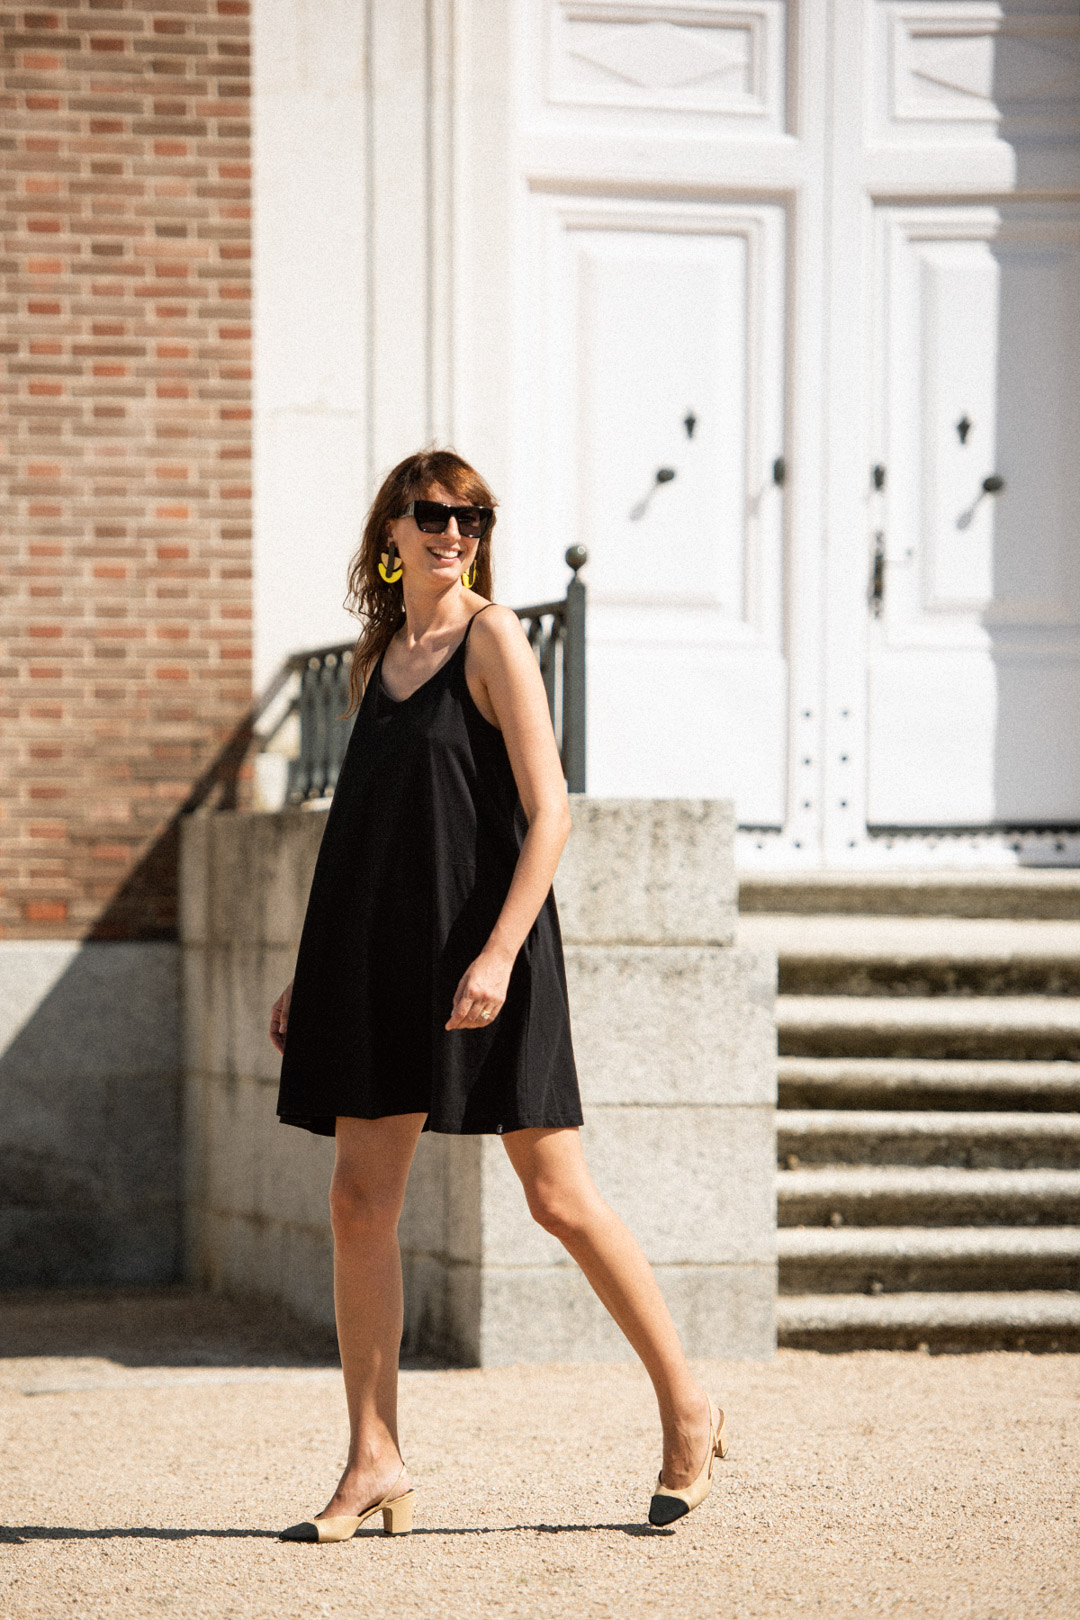 black-dress-summer-mayte-de-la-iglesia8